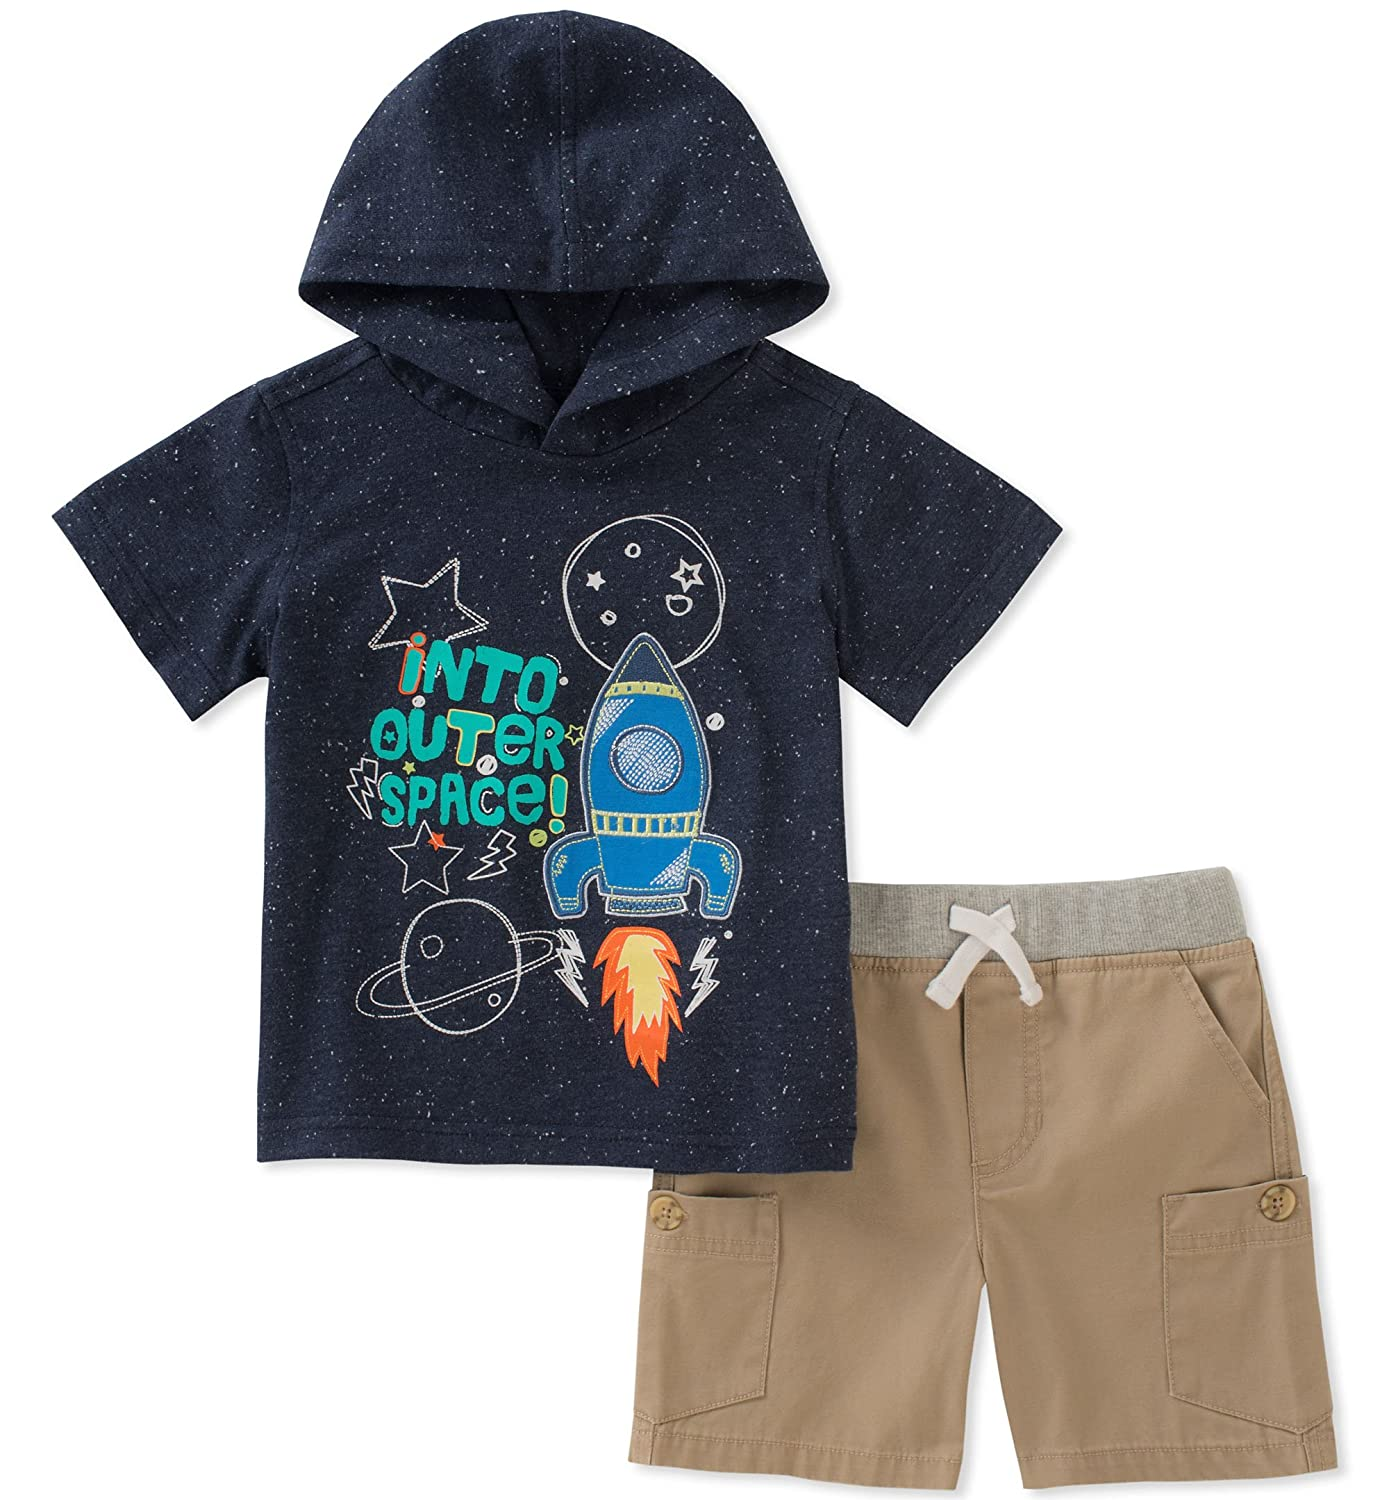 Kids Headquarters Boys' 2 Pieces Hooded Shorts Set P000512965